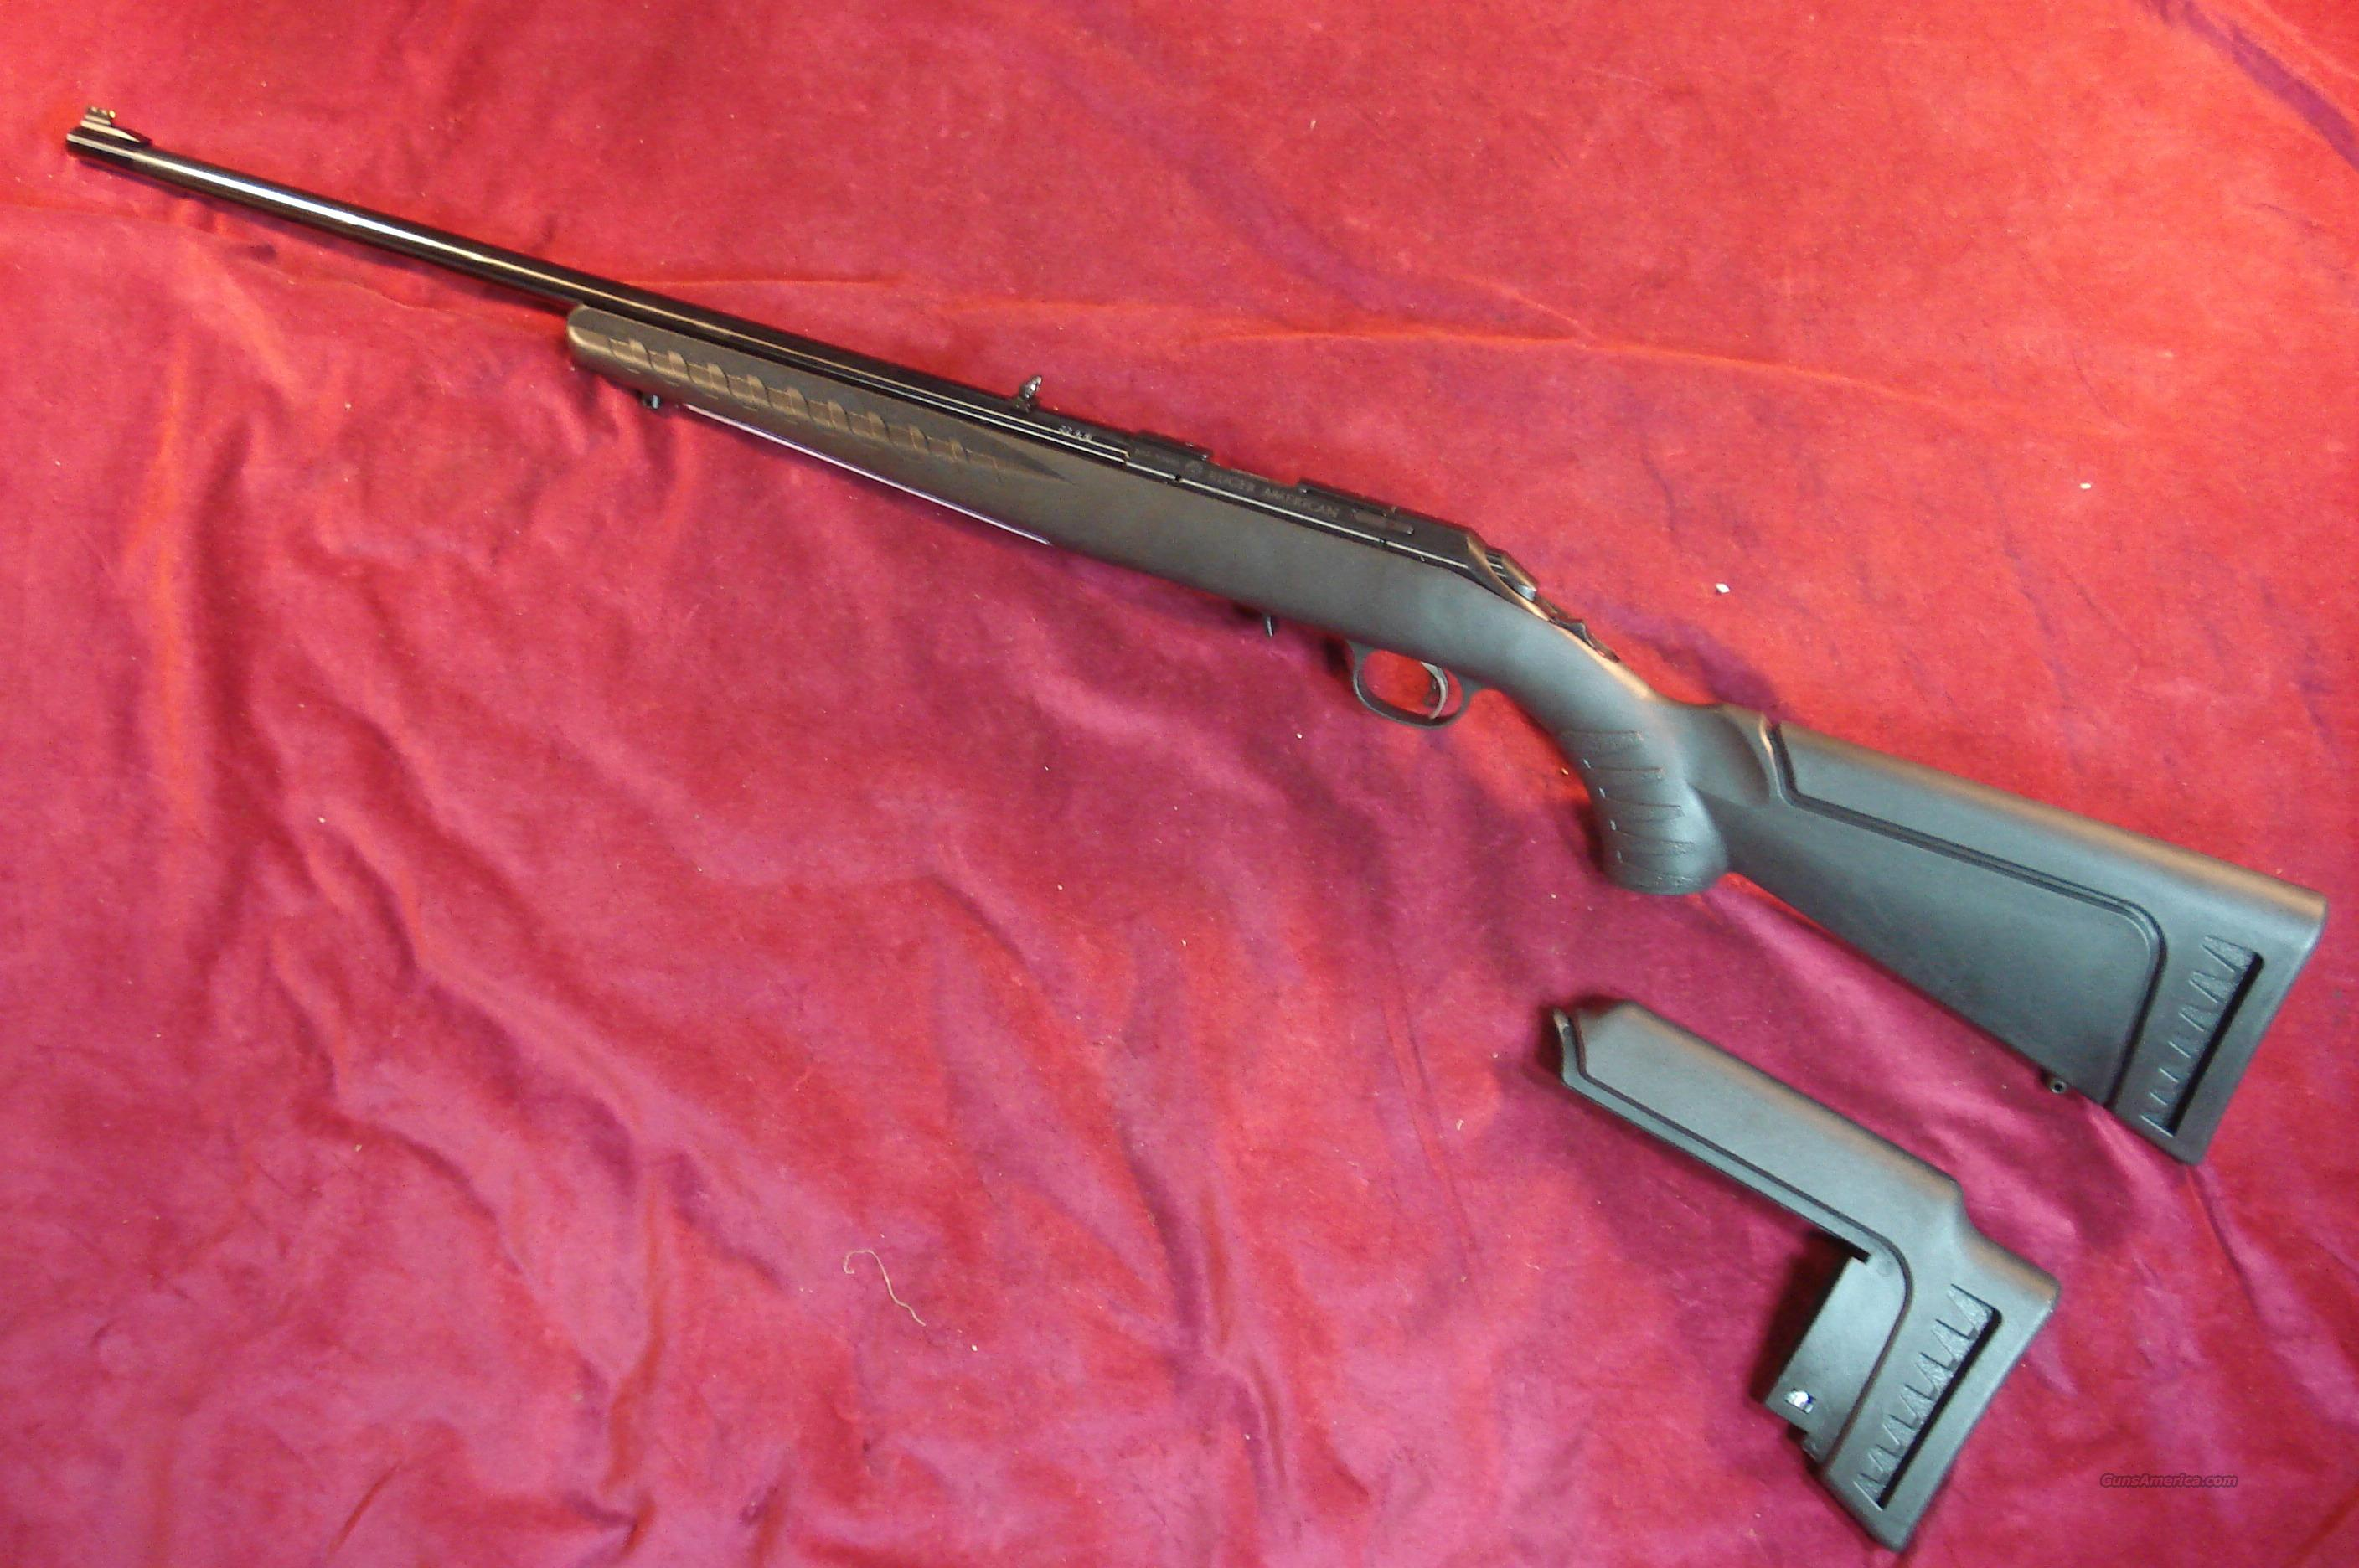 RUGER AMERICAN RIFLE 22LR CAL NEW  (08301)  Guns > Rifles > Ruger Rifles > American Rifle